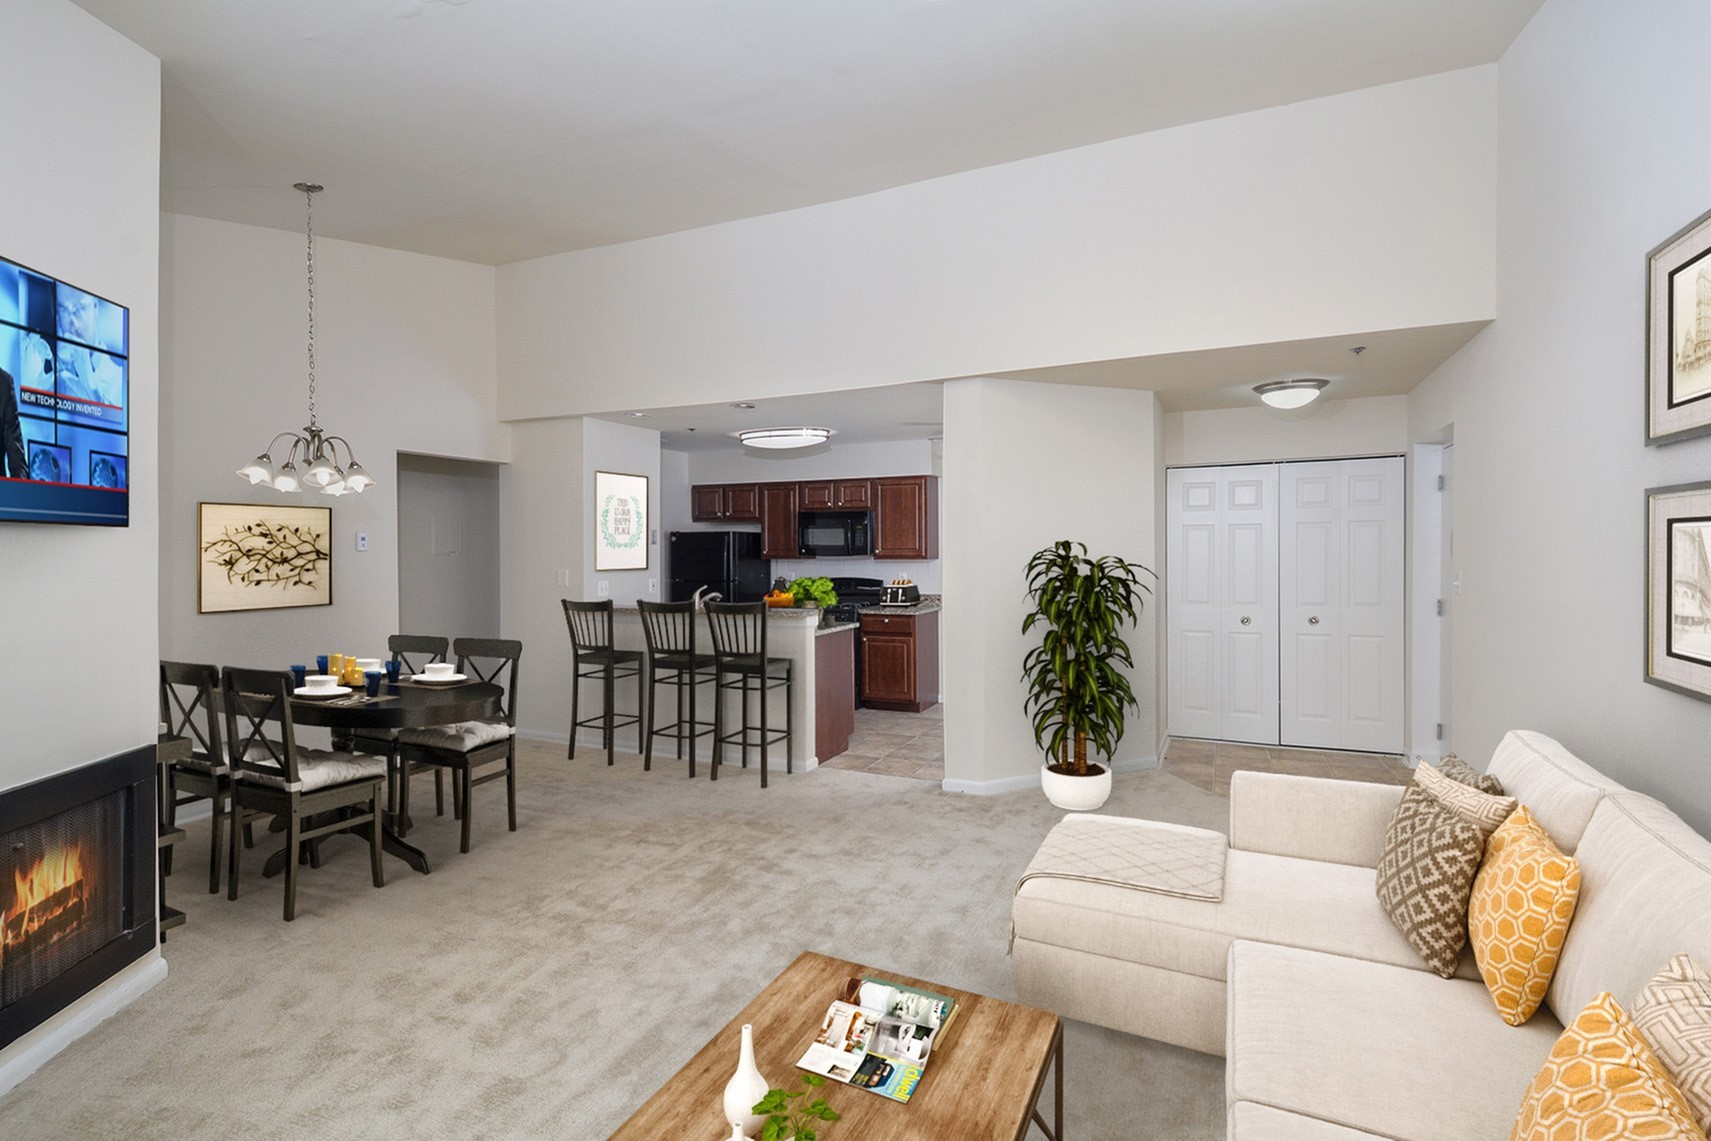 Luxury Apartments Silver Spring MD | Apartments Silver Spring MD | Yorkshire Apartments